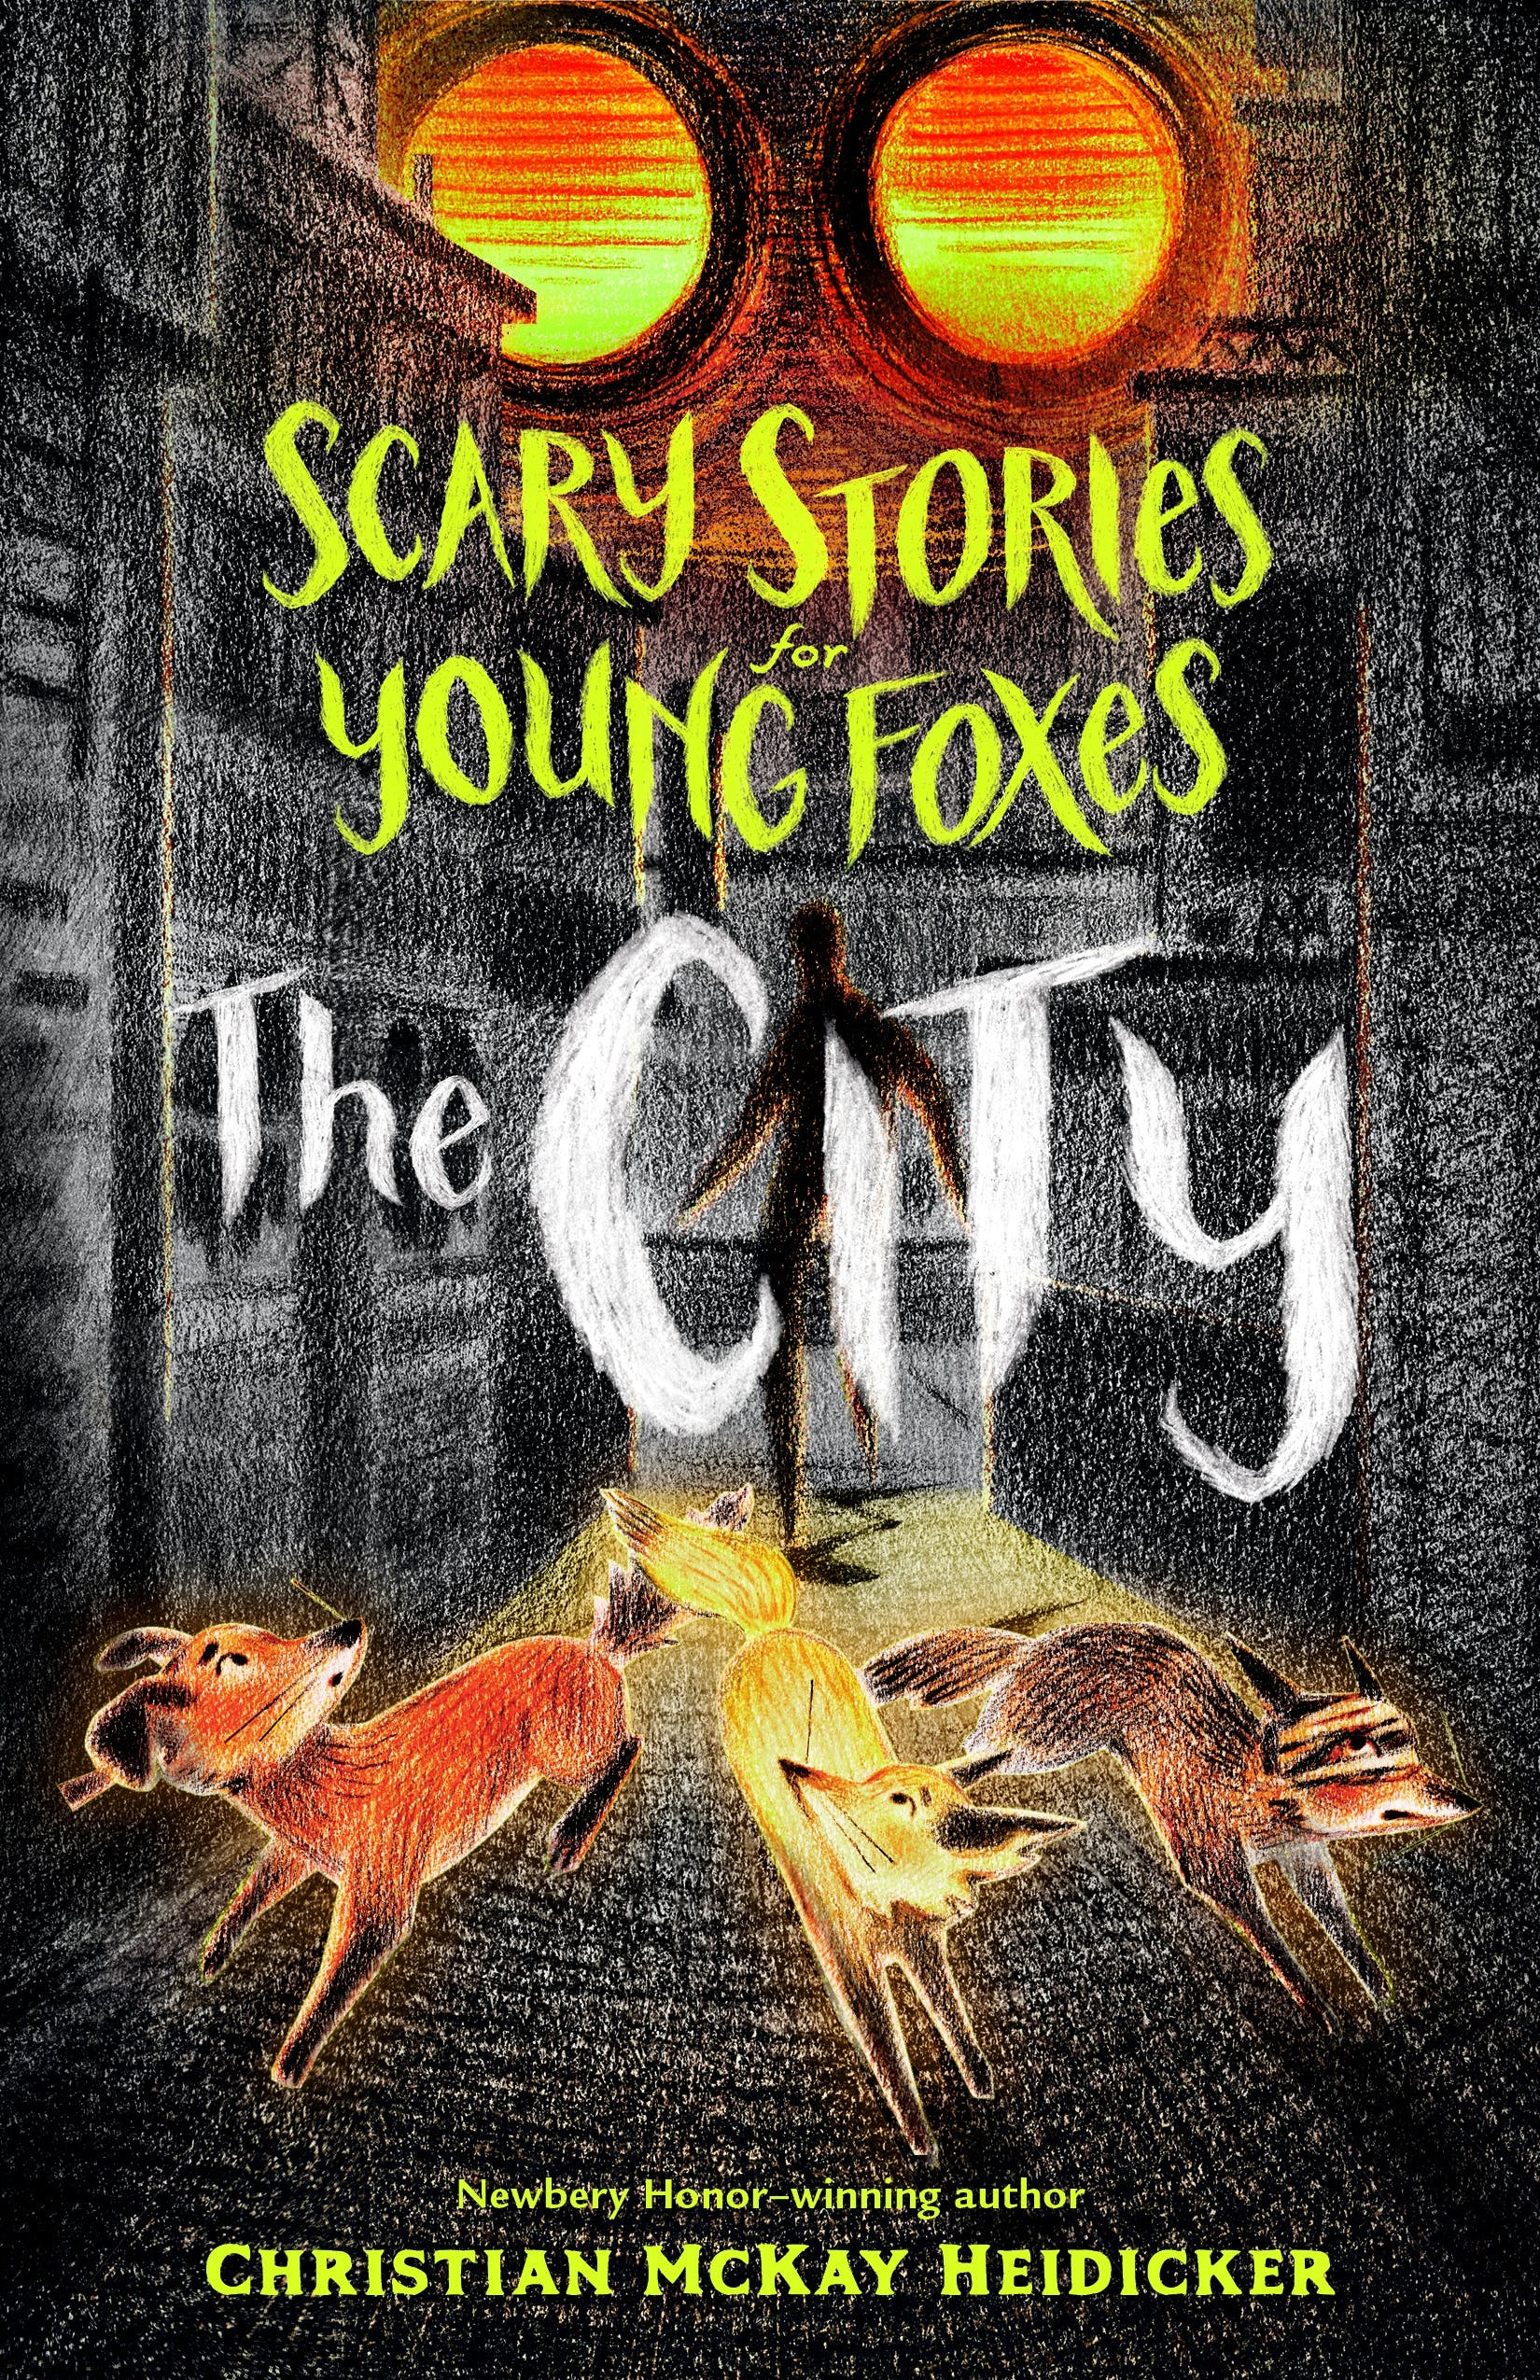 Image of Scary Stories for Young Foxes: The City